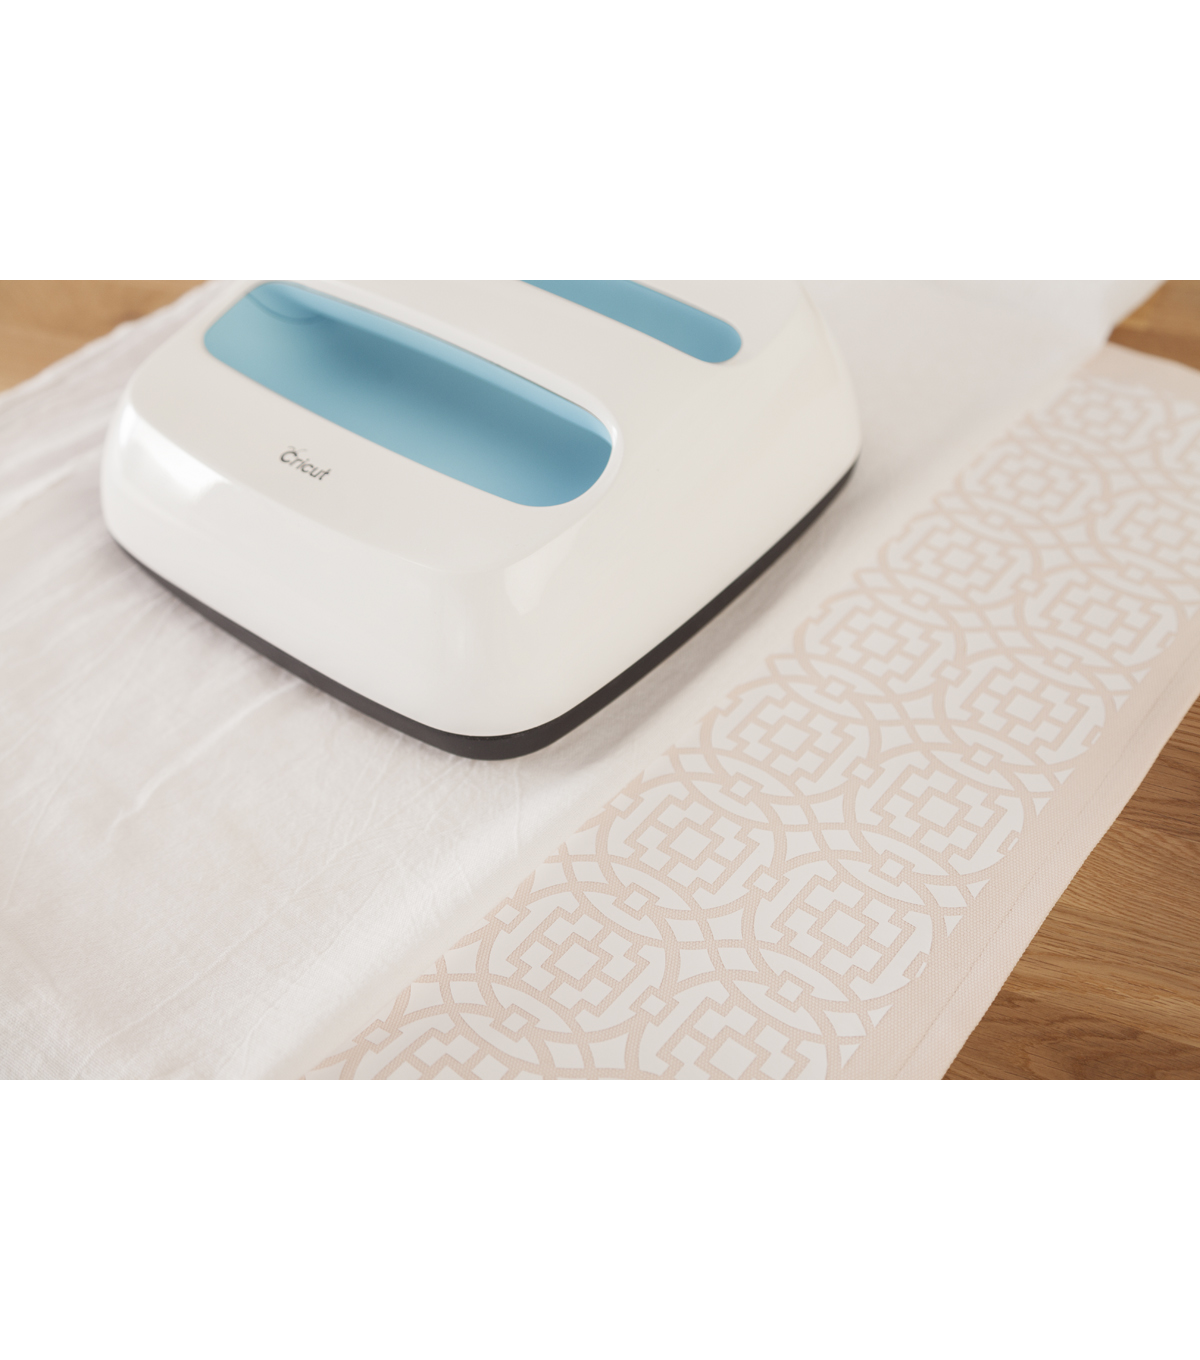 Cricut Easypress Machine